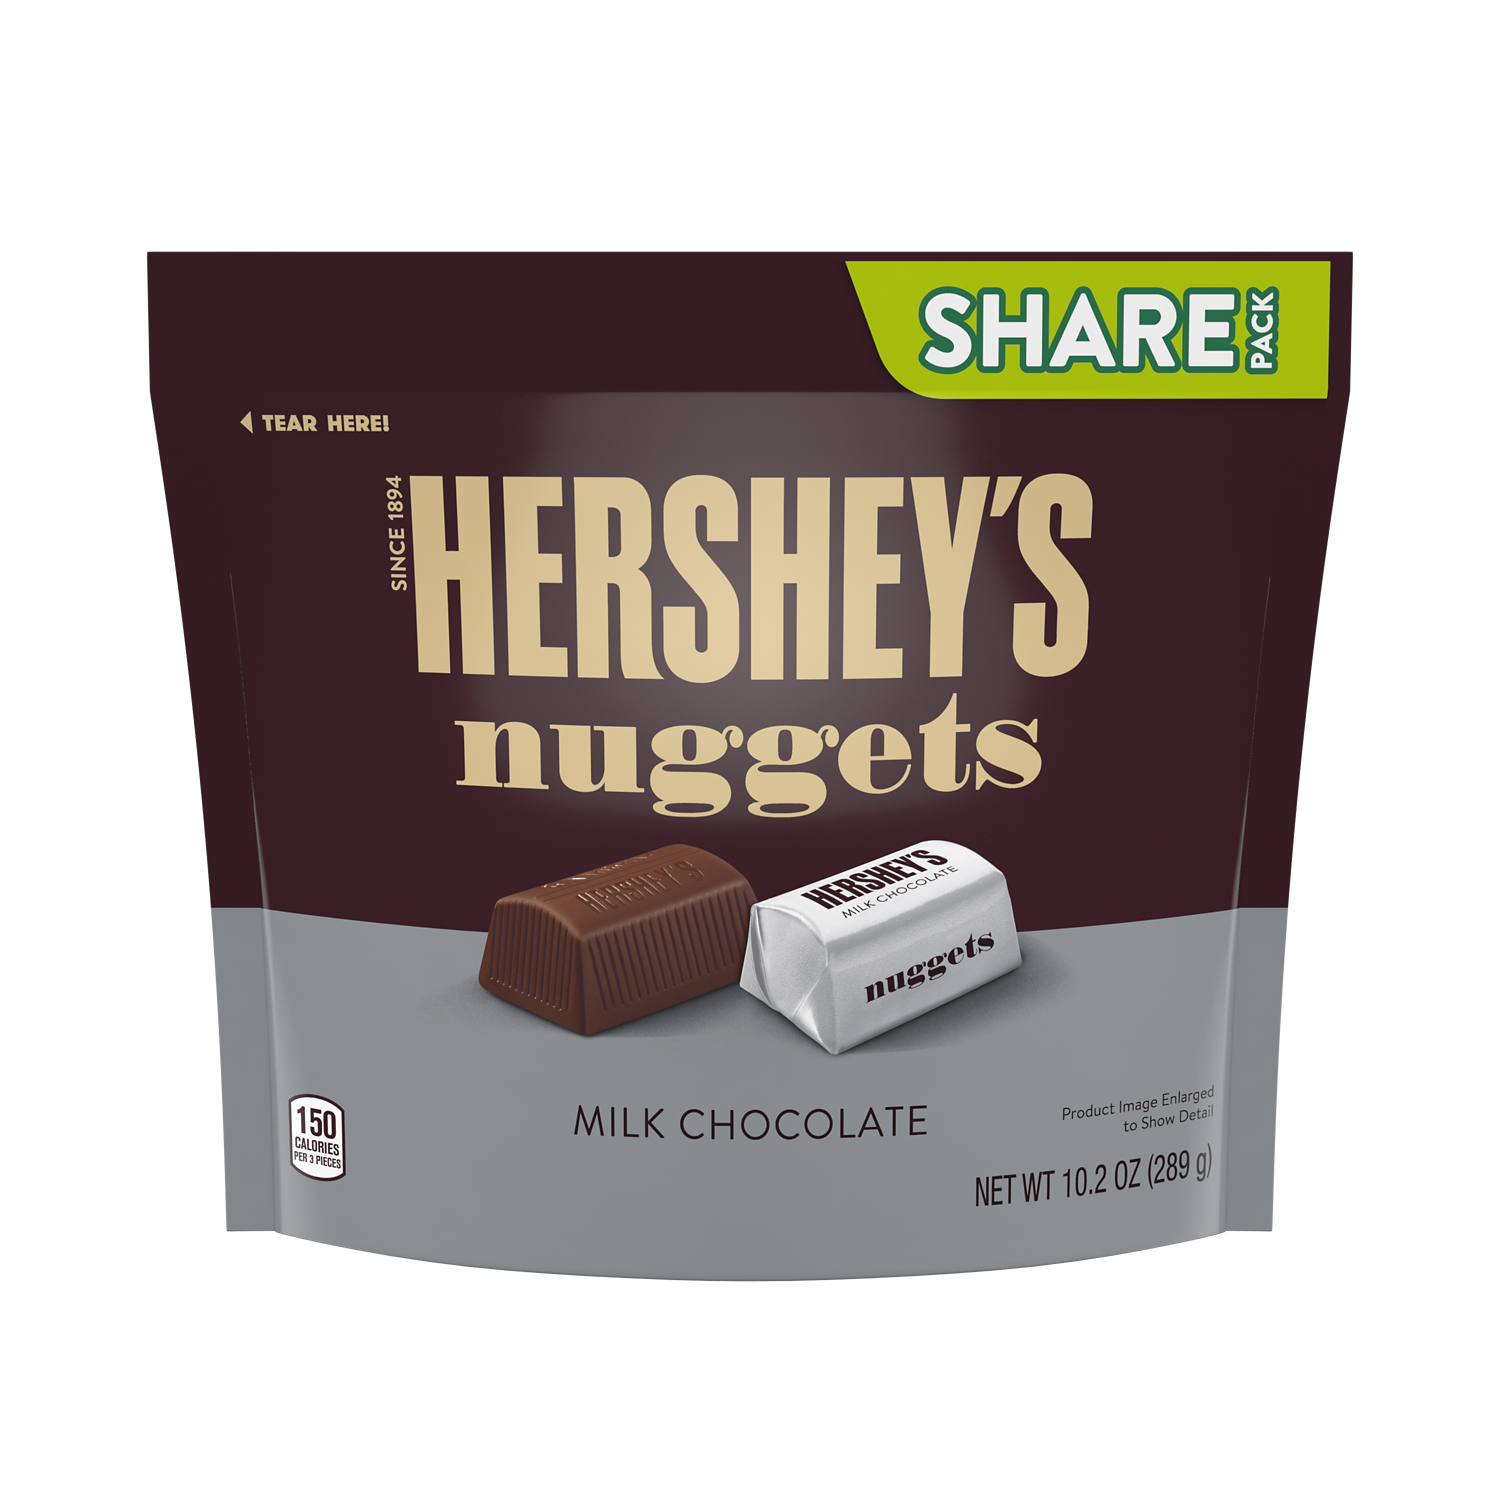 HERSHEY'S NUGGETS Milk Chocolate Candy, 10.2 oz pack - Front of Package